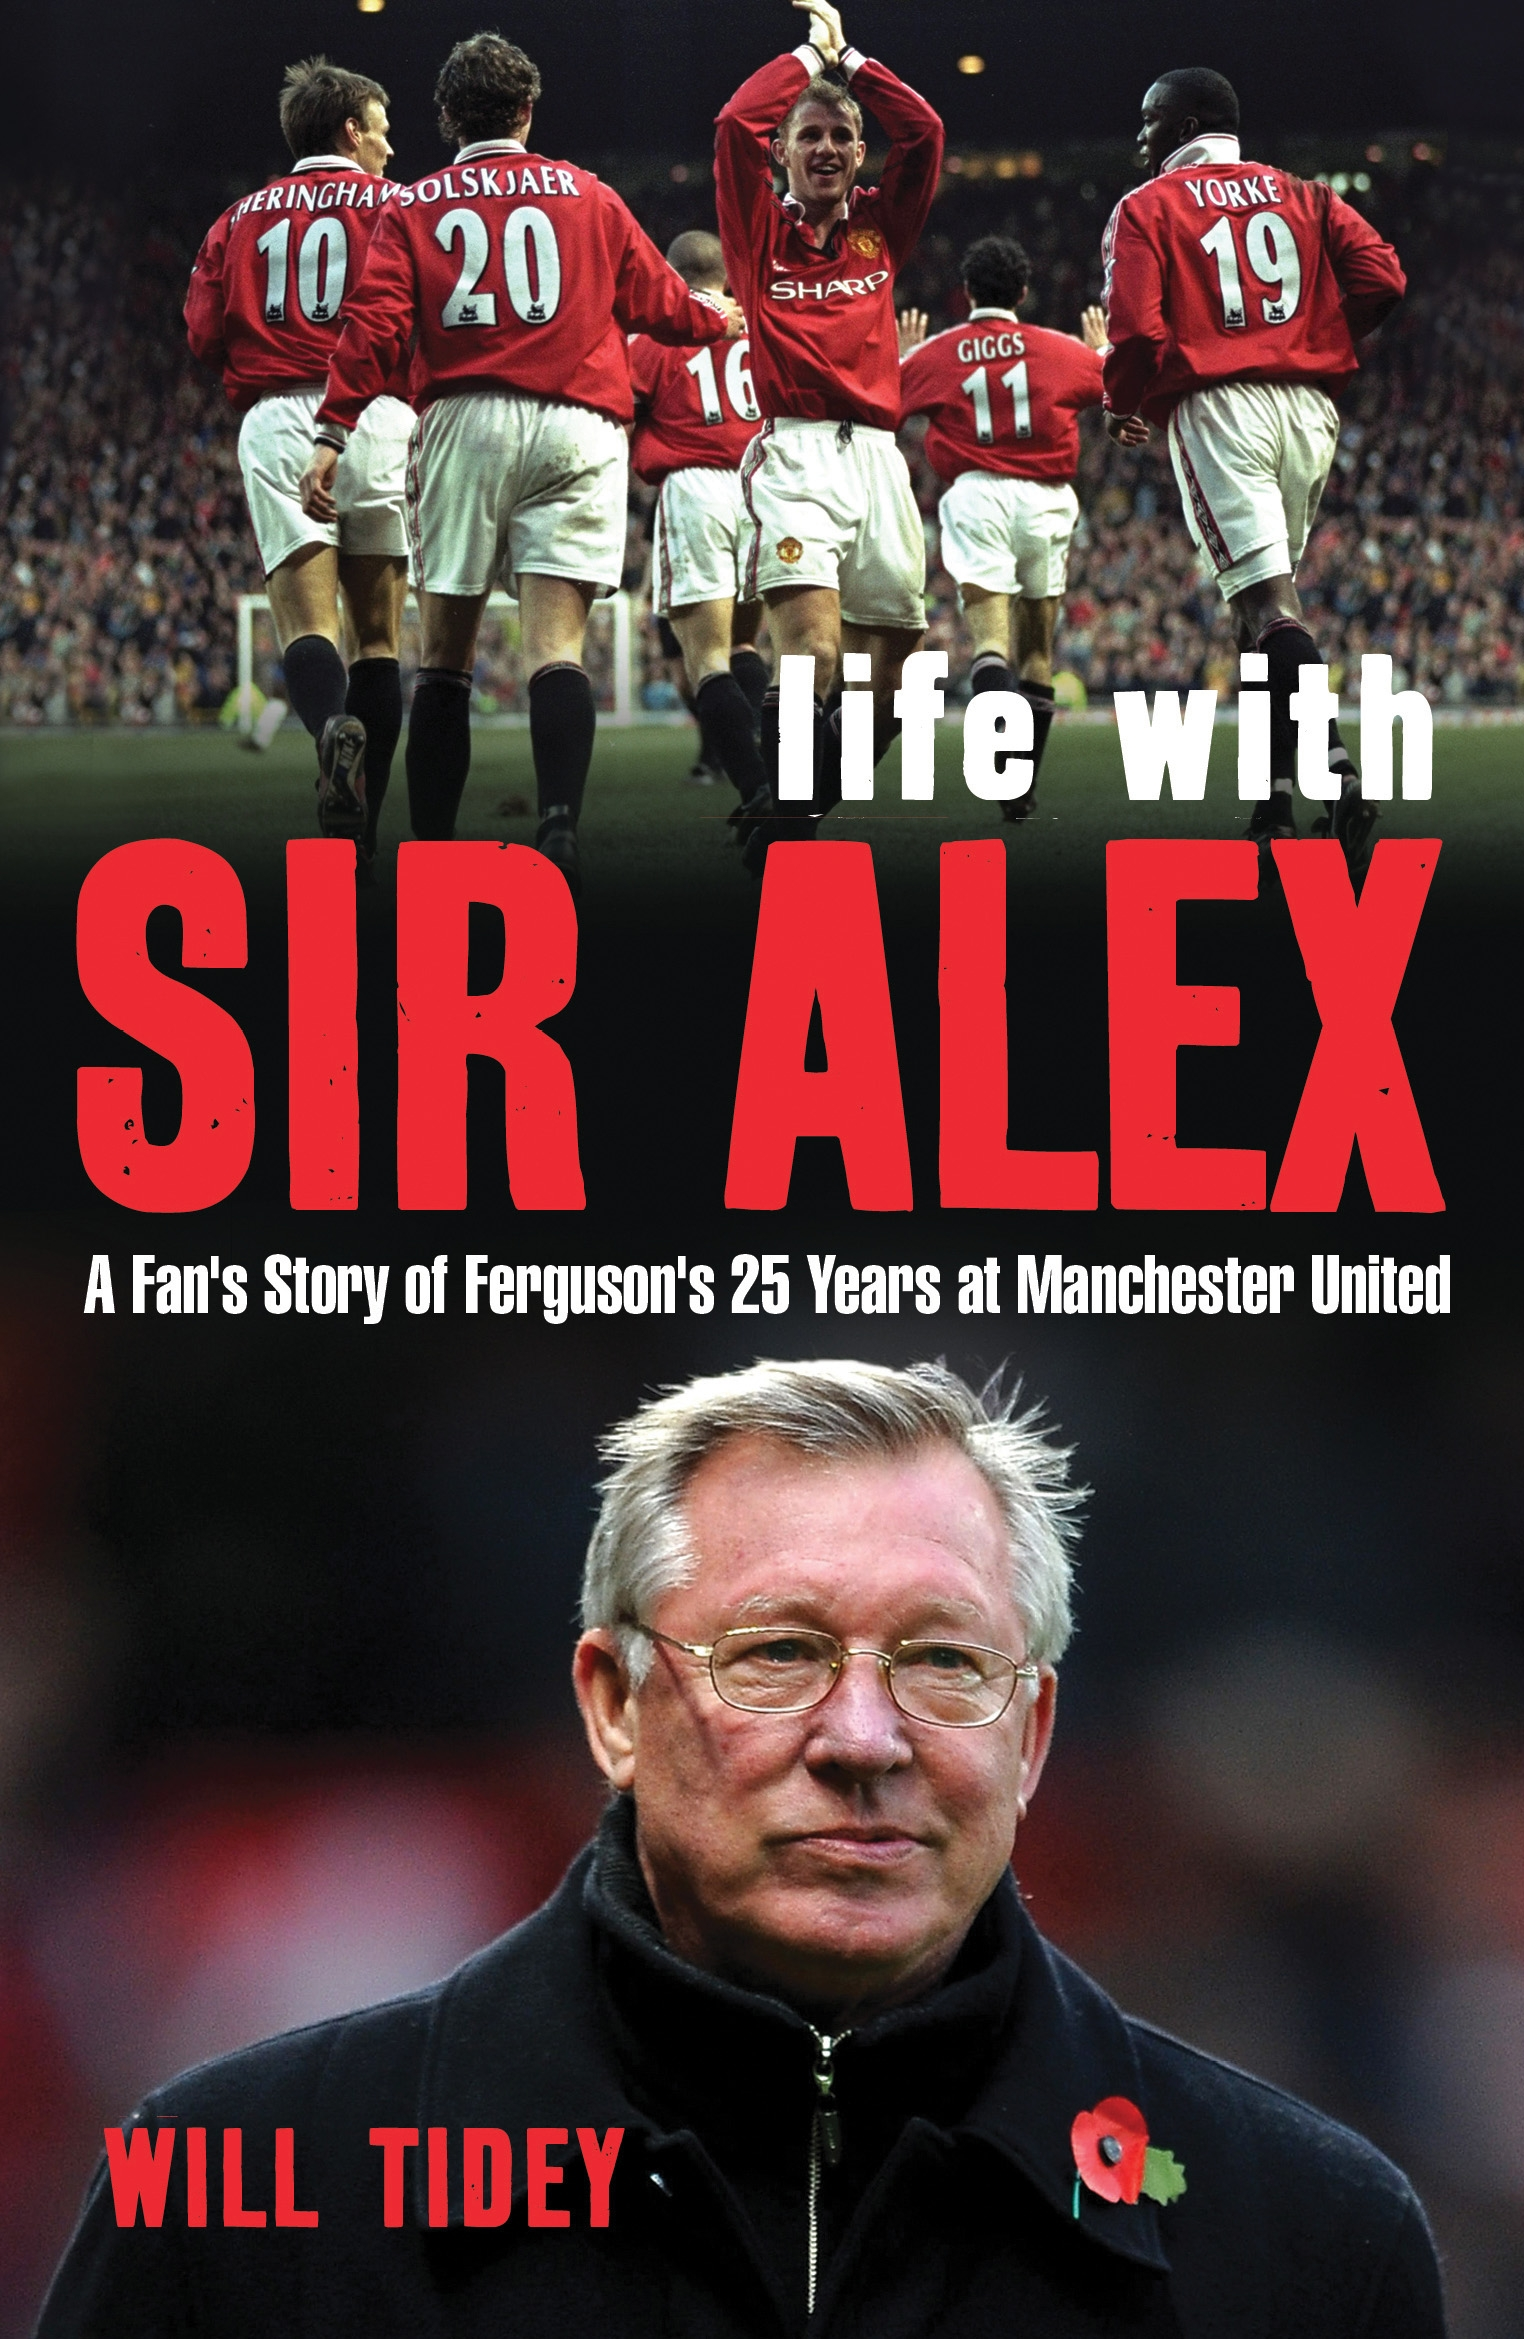 Life with Sir Alex A Fan's Story of Ferguson's 25 Years at Manchester United